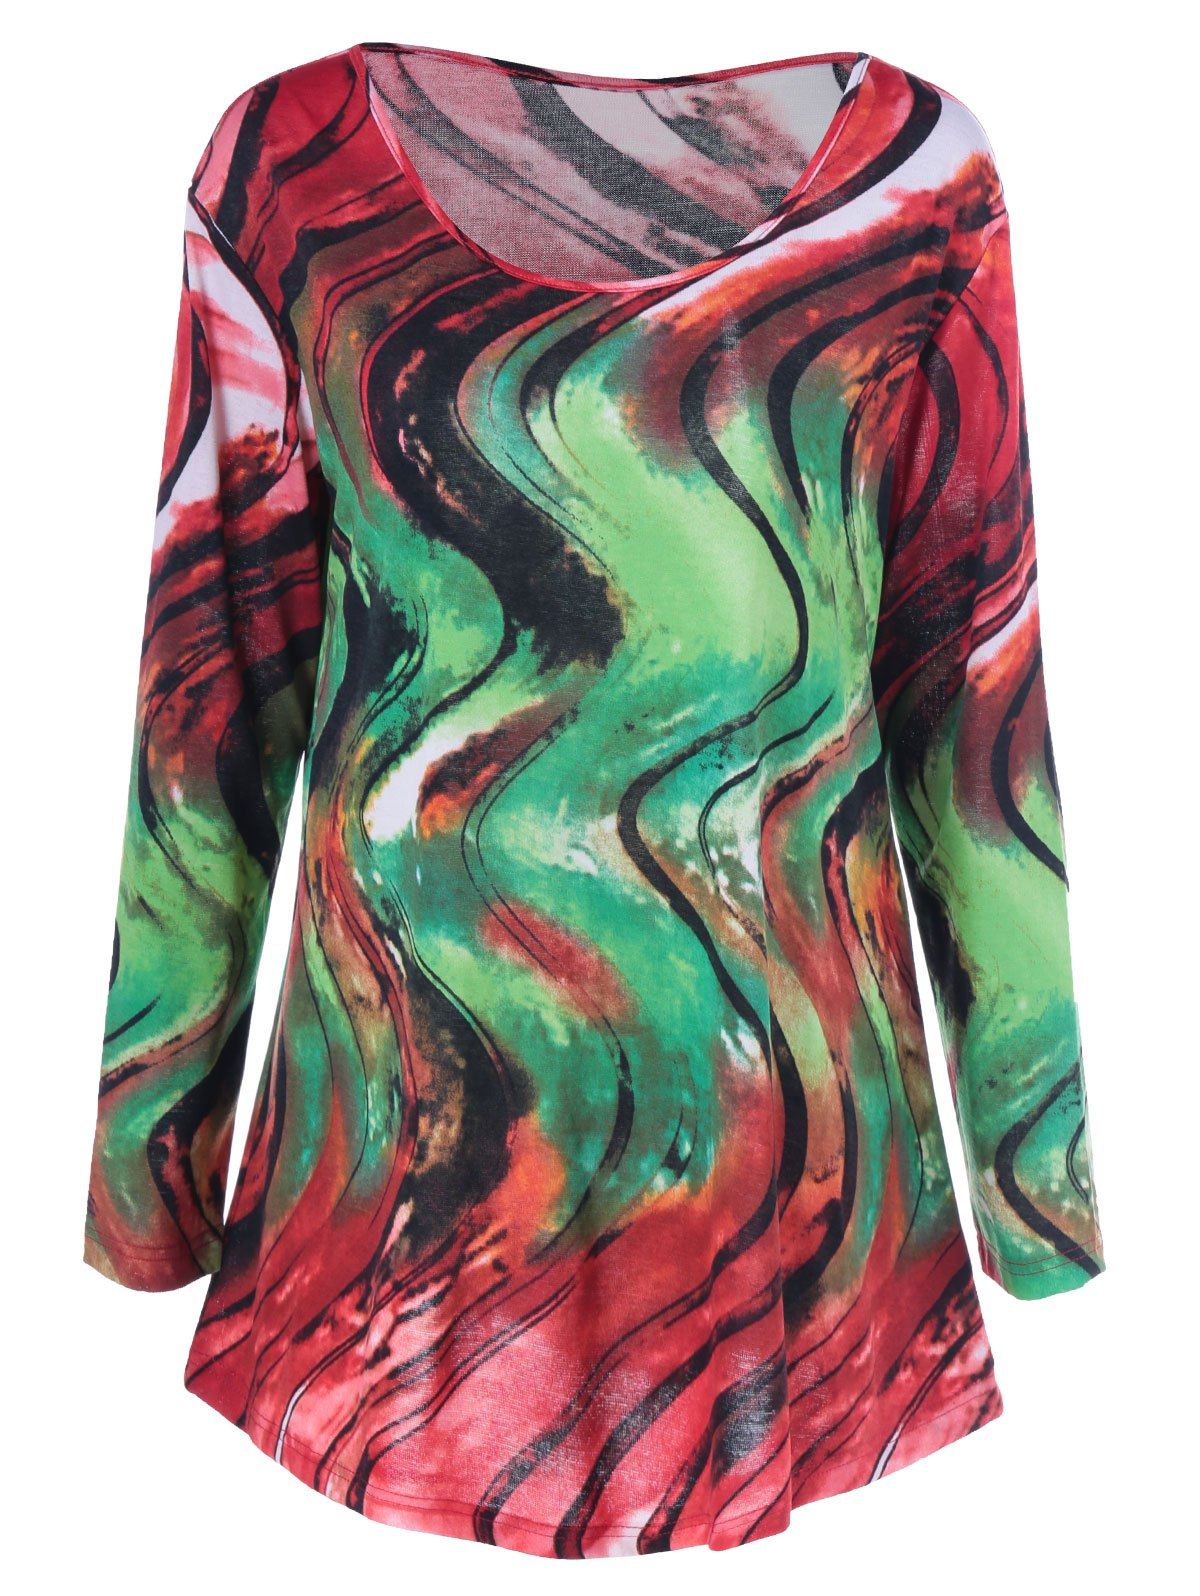 Colorful Abstract Print Tee